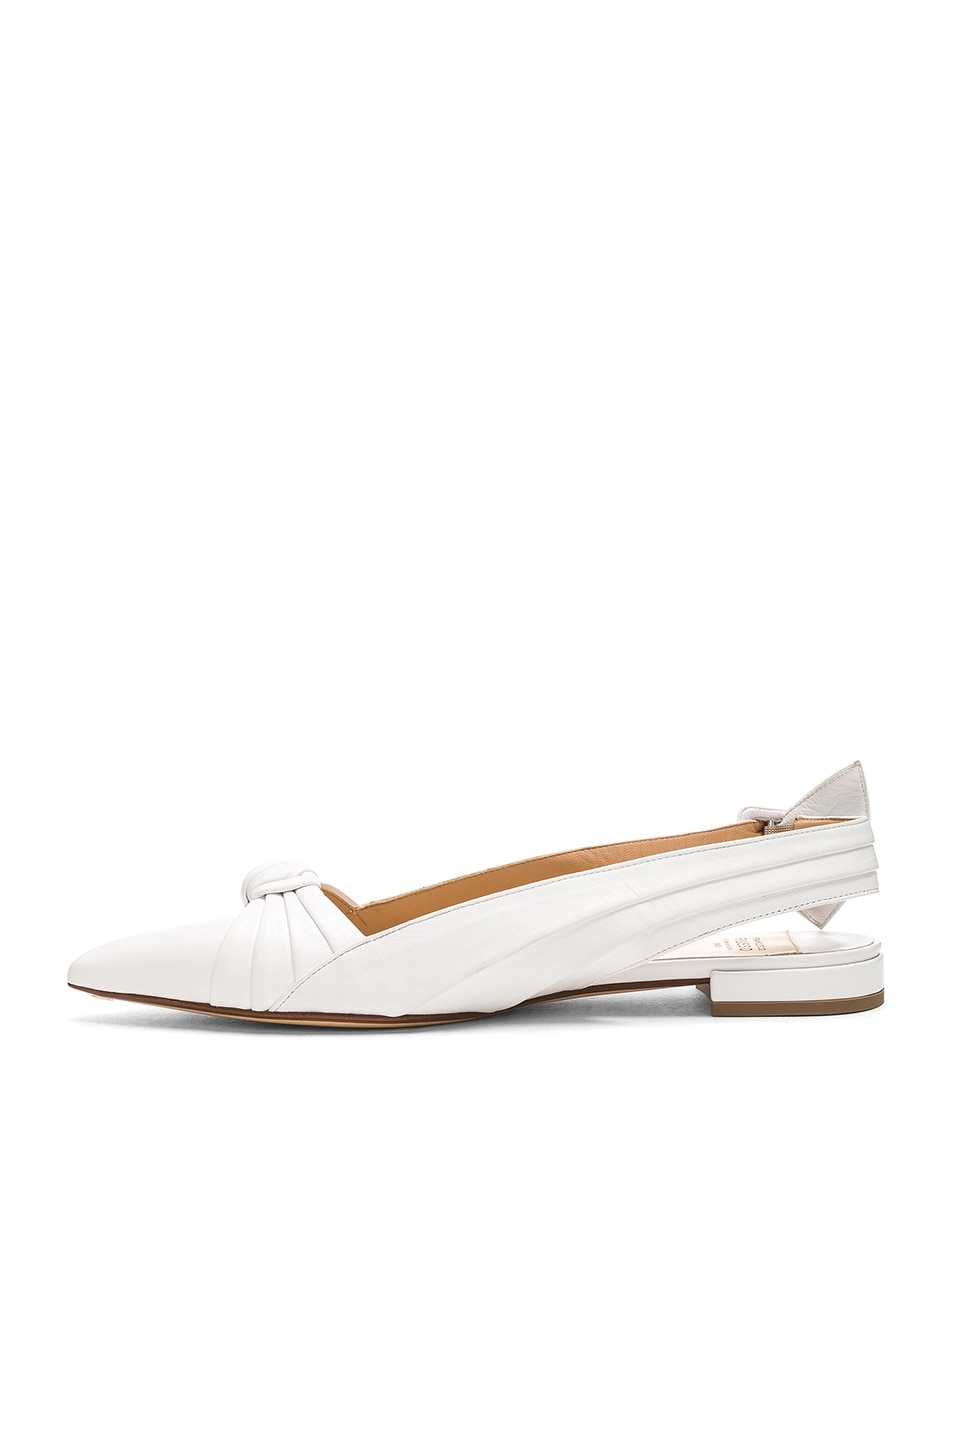 Image 5 of FRANCESCO RUSSO Slingback Flats in White